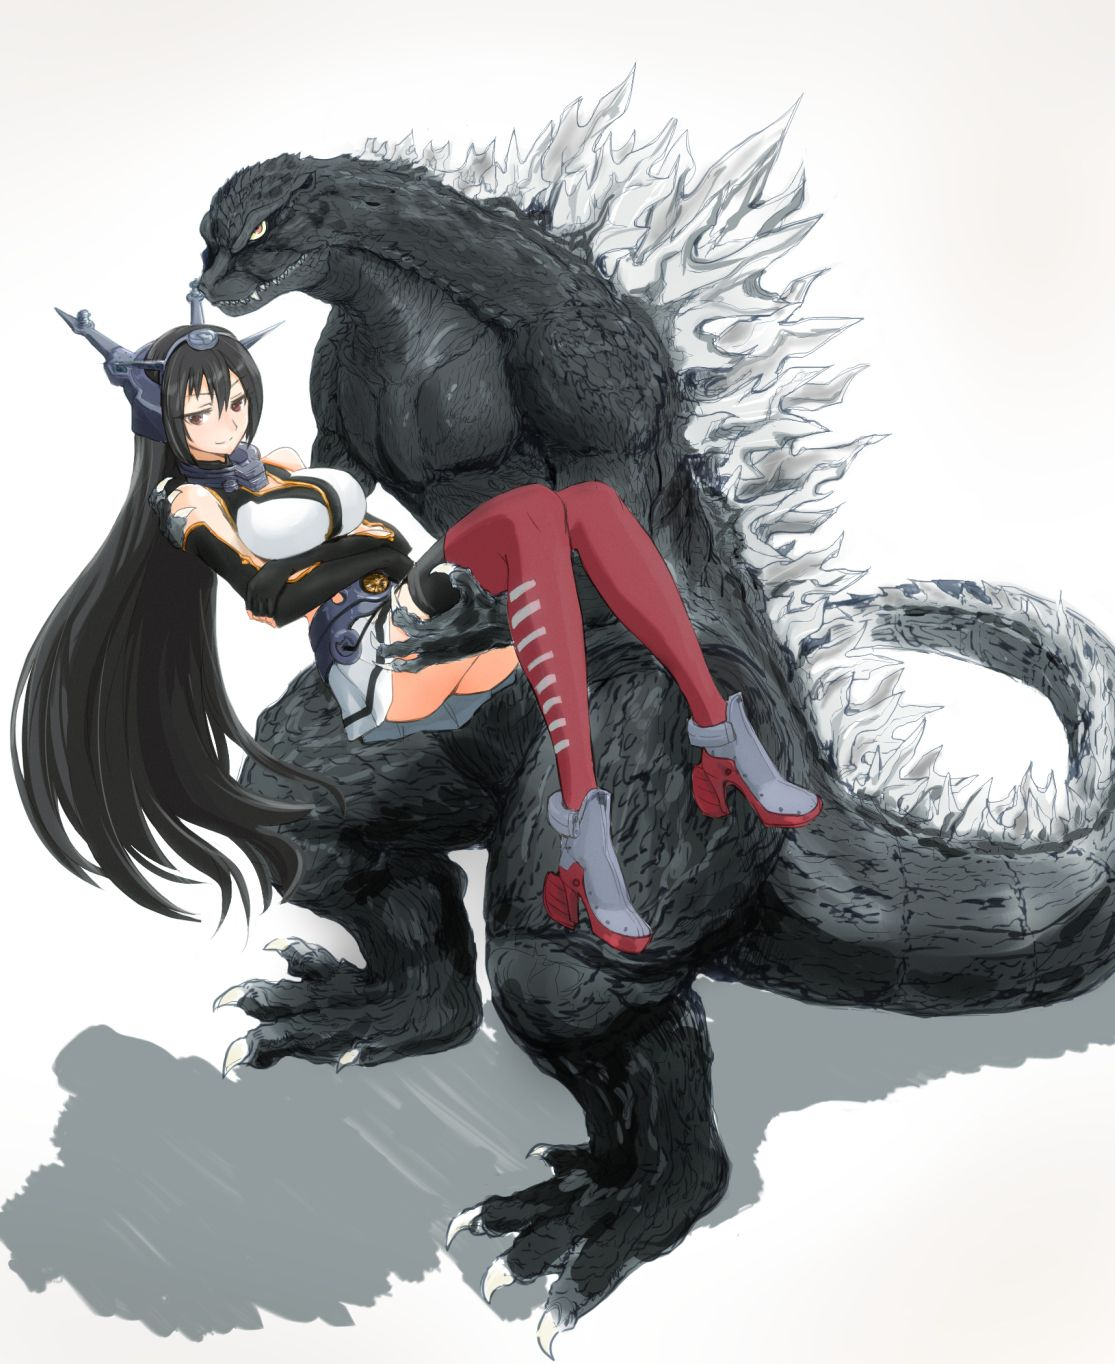 """Godzilla"" ""Nagato"" Kantai Collection (KanColle"